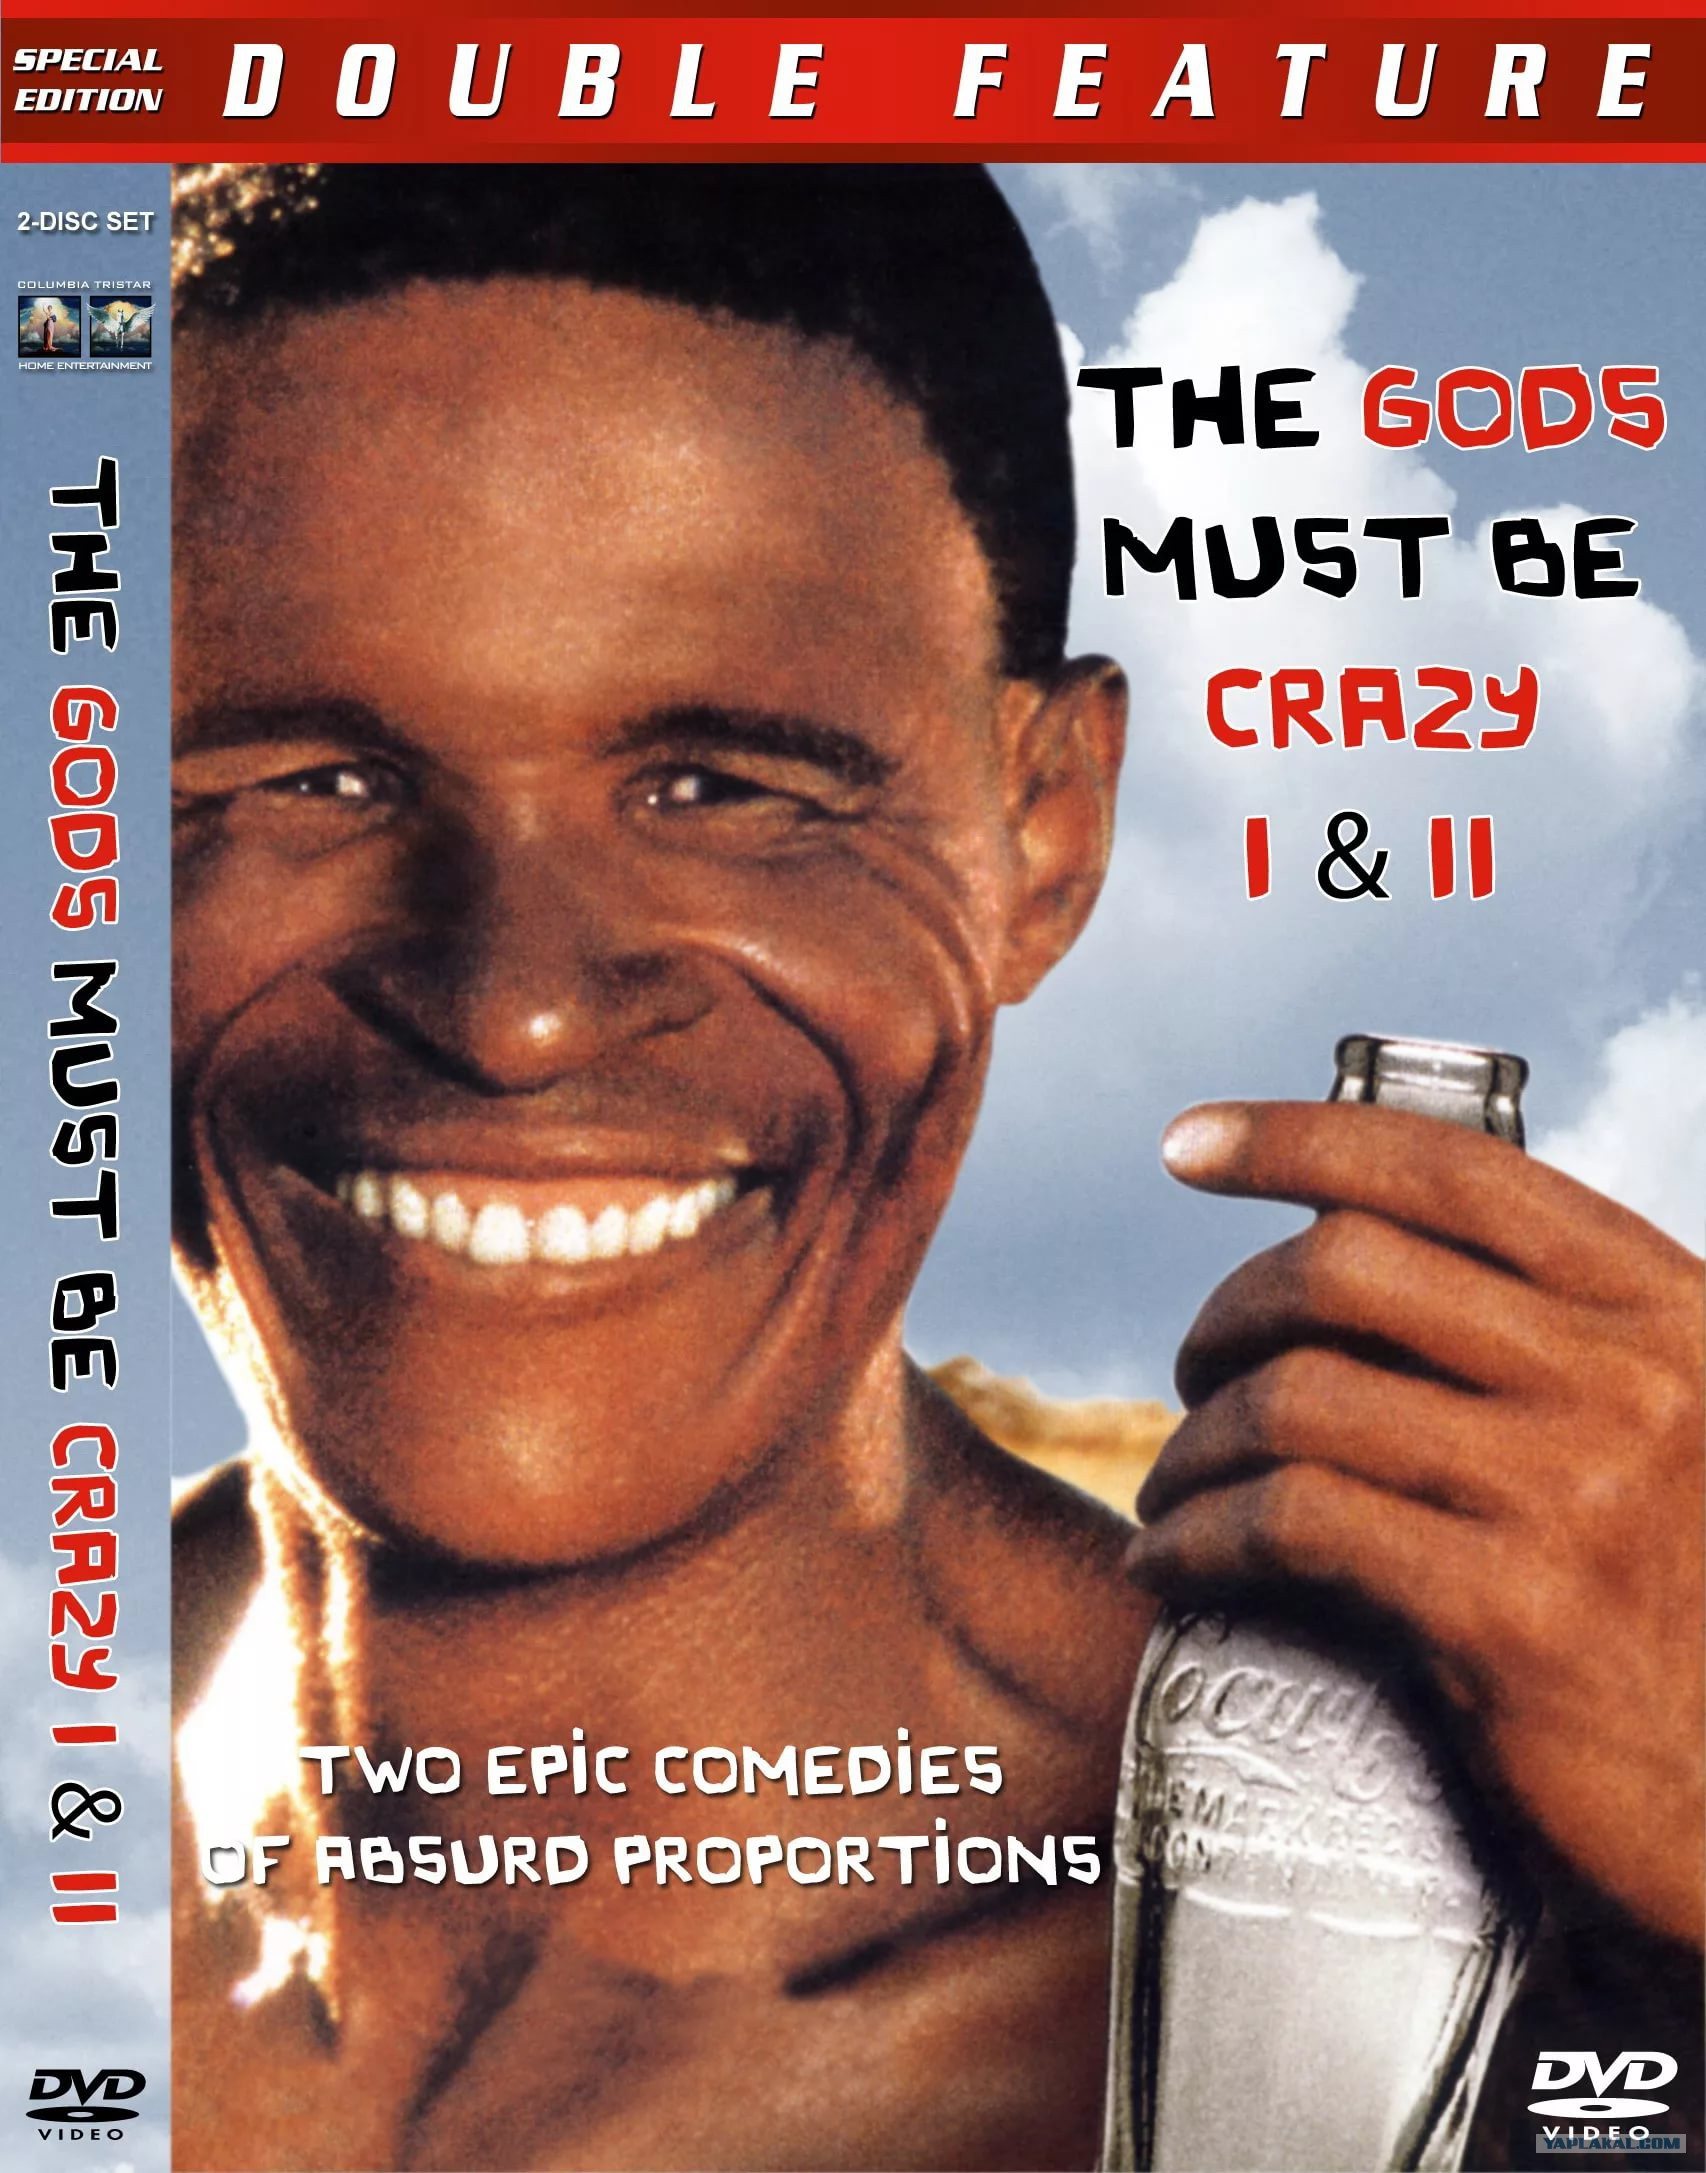 essay gods must crazy The gods must be crazy are helping each other out in this movie, a coca-cola bottle gets dropped from the plane onto a village of tribesmen in the middle of the kalahari desert.